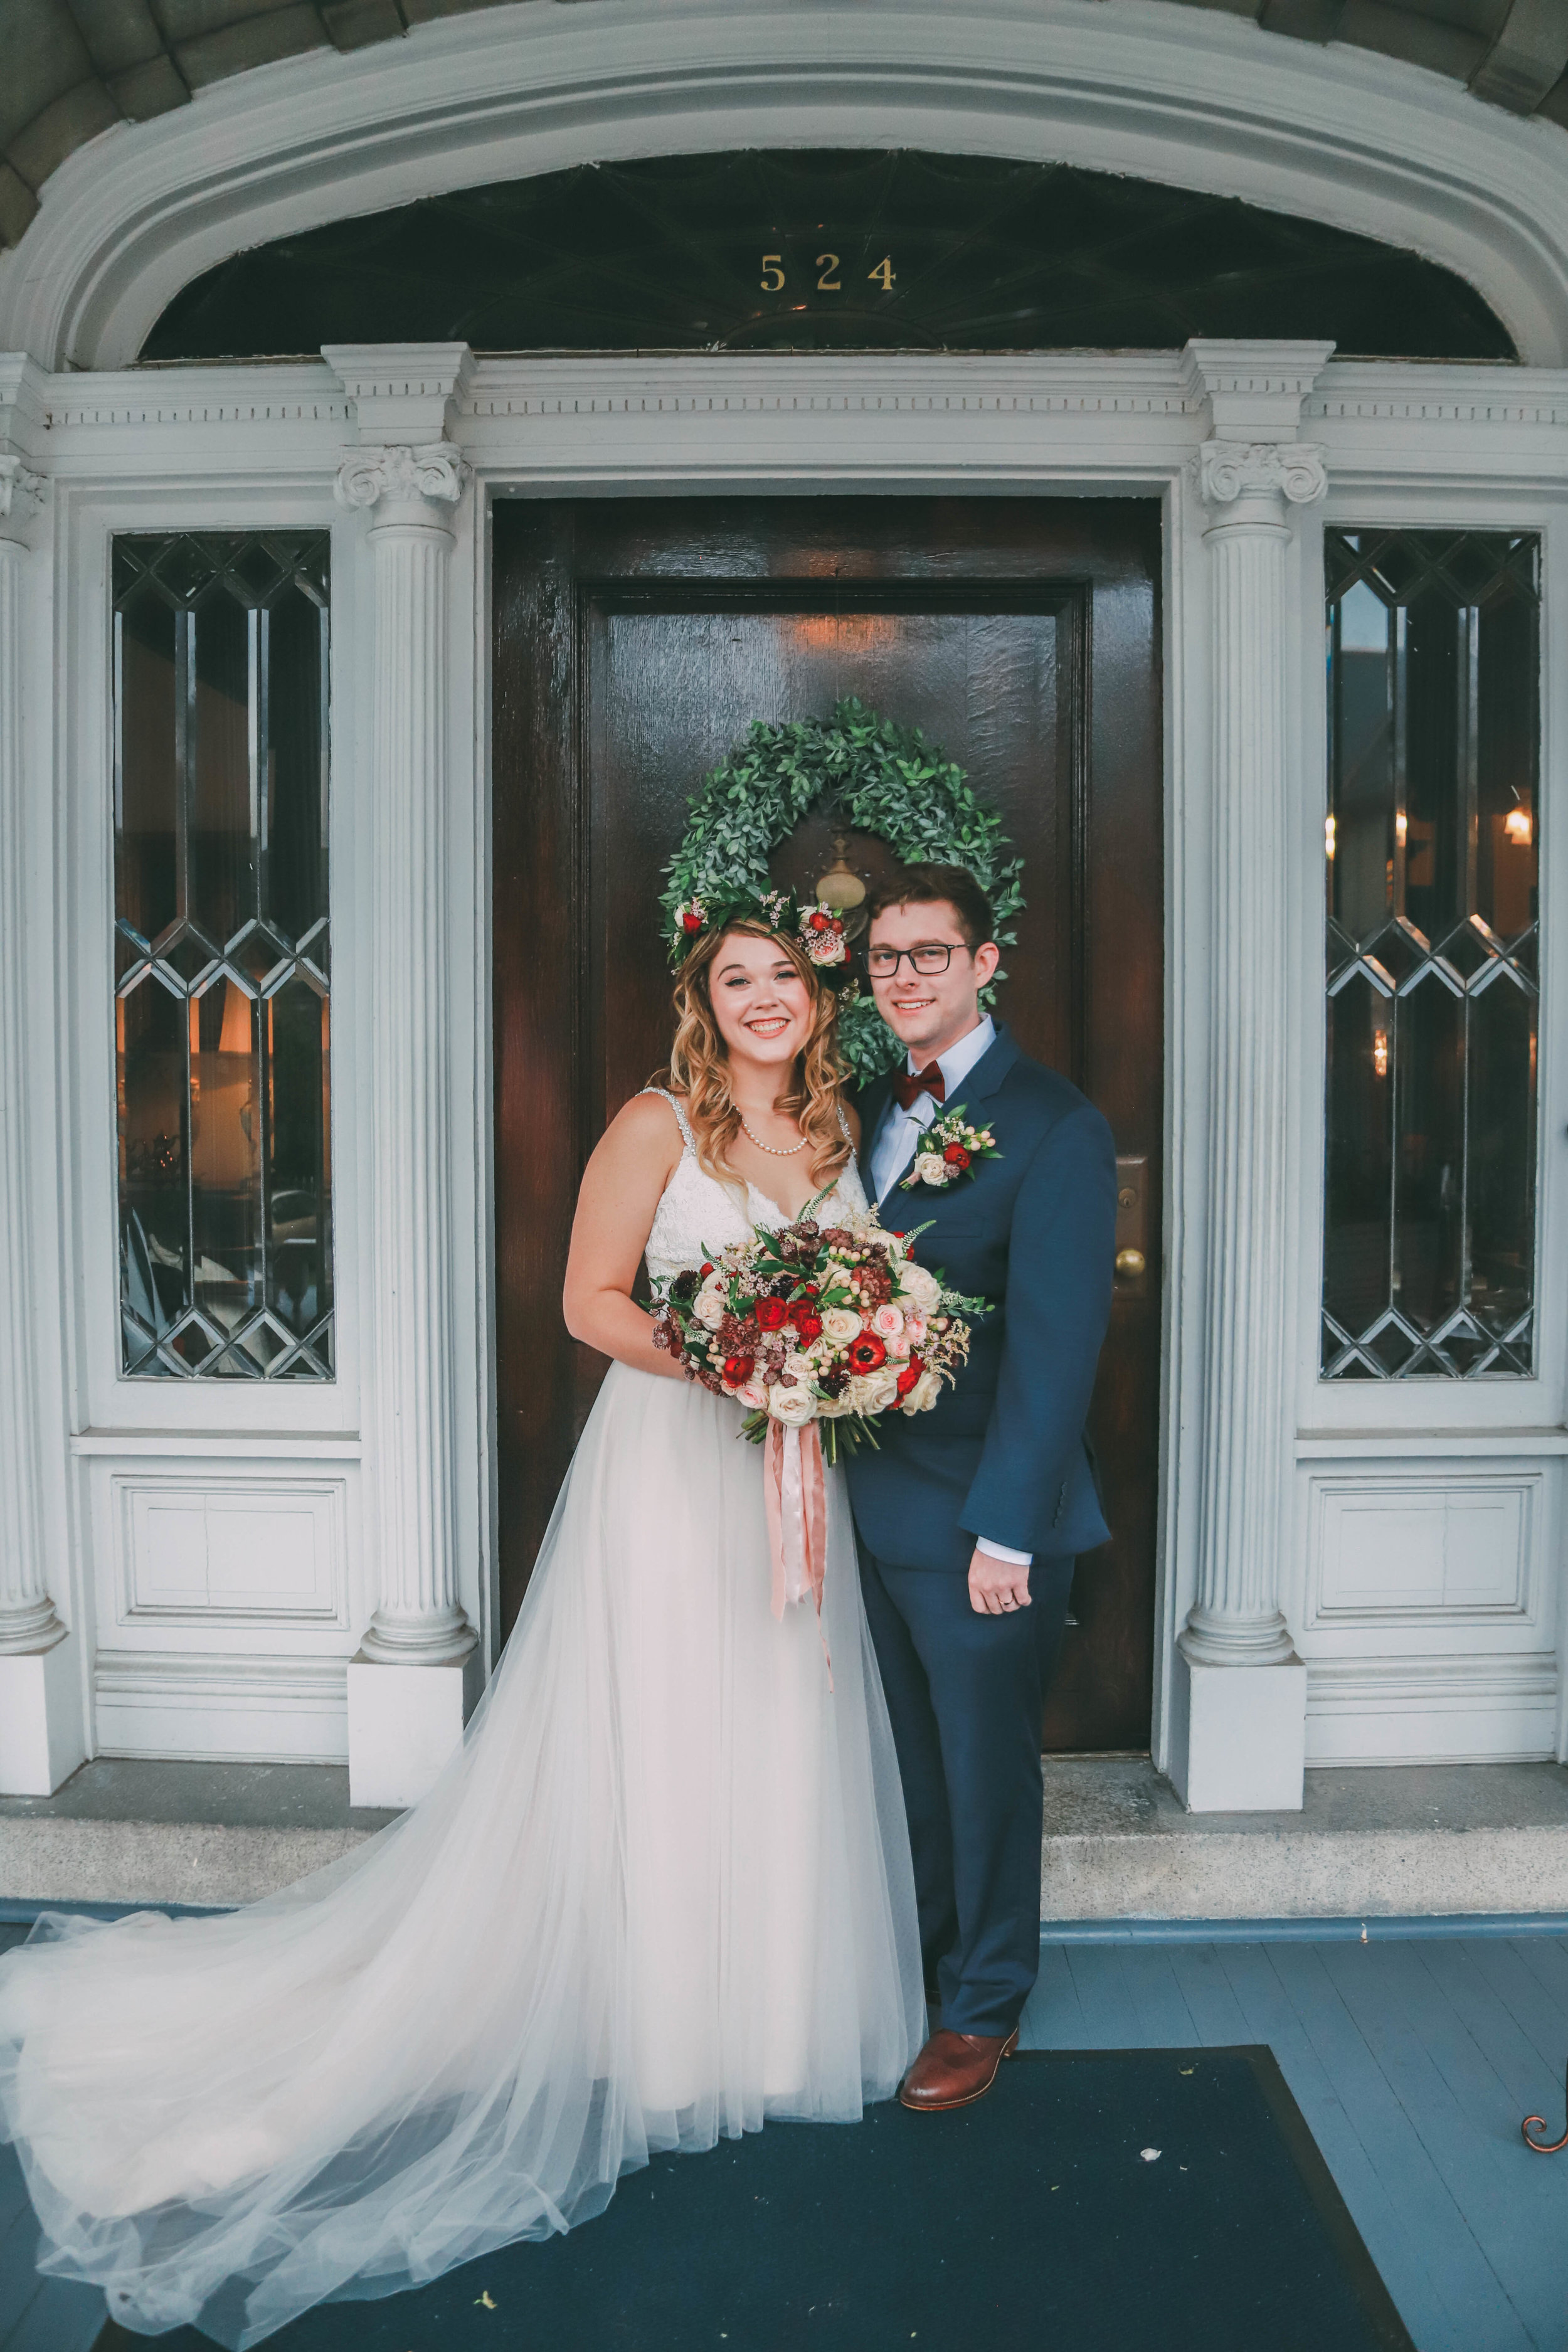 Bridgette+Jacob-200.jpg